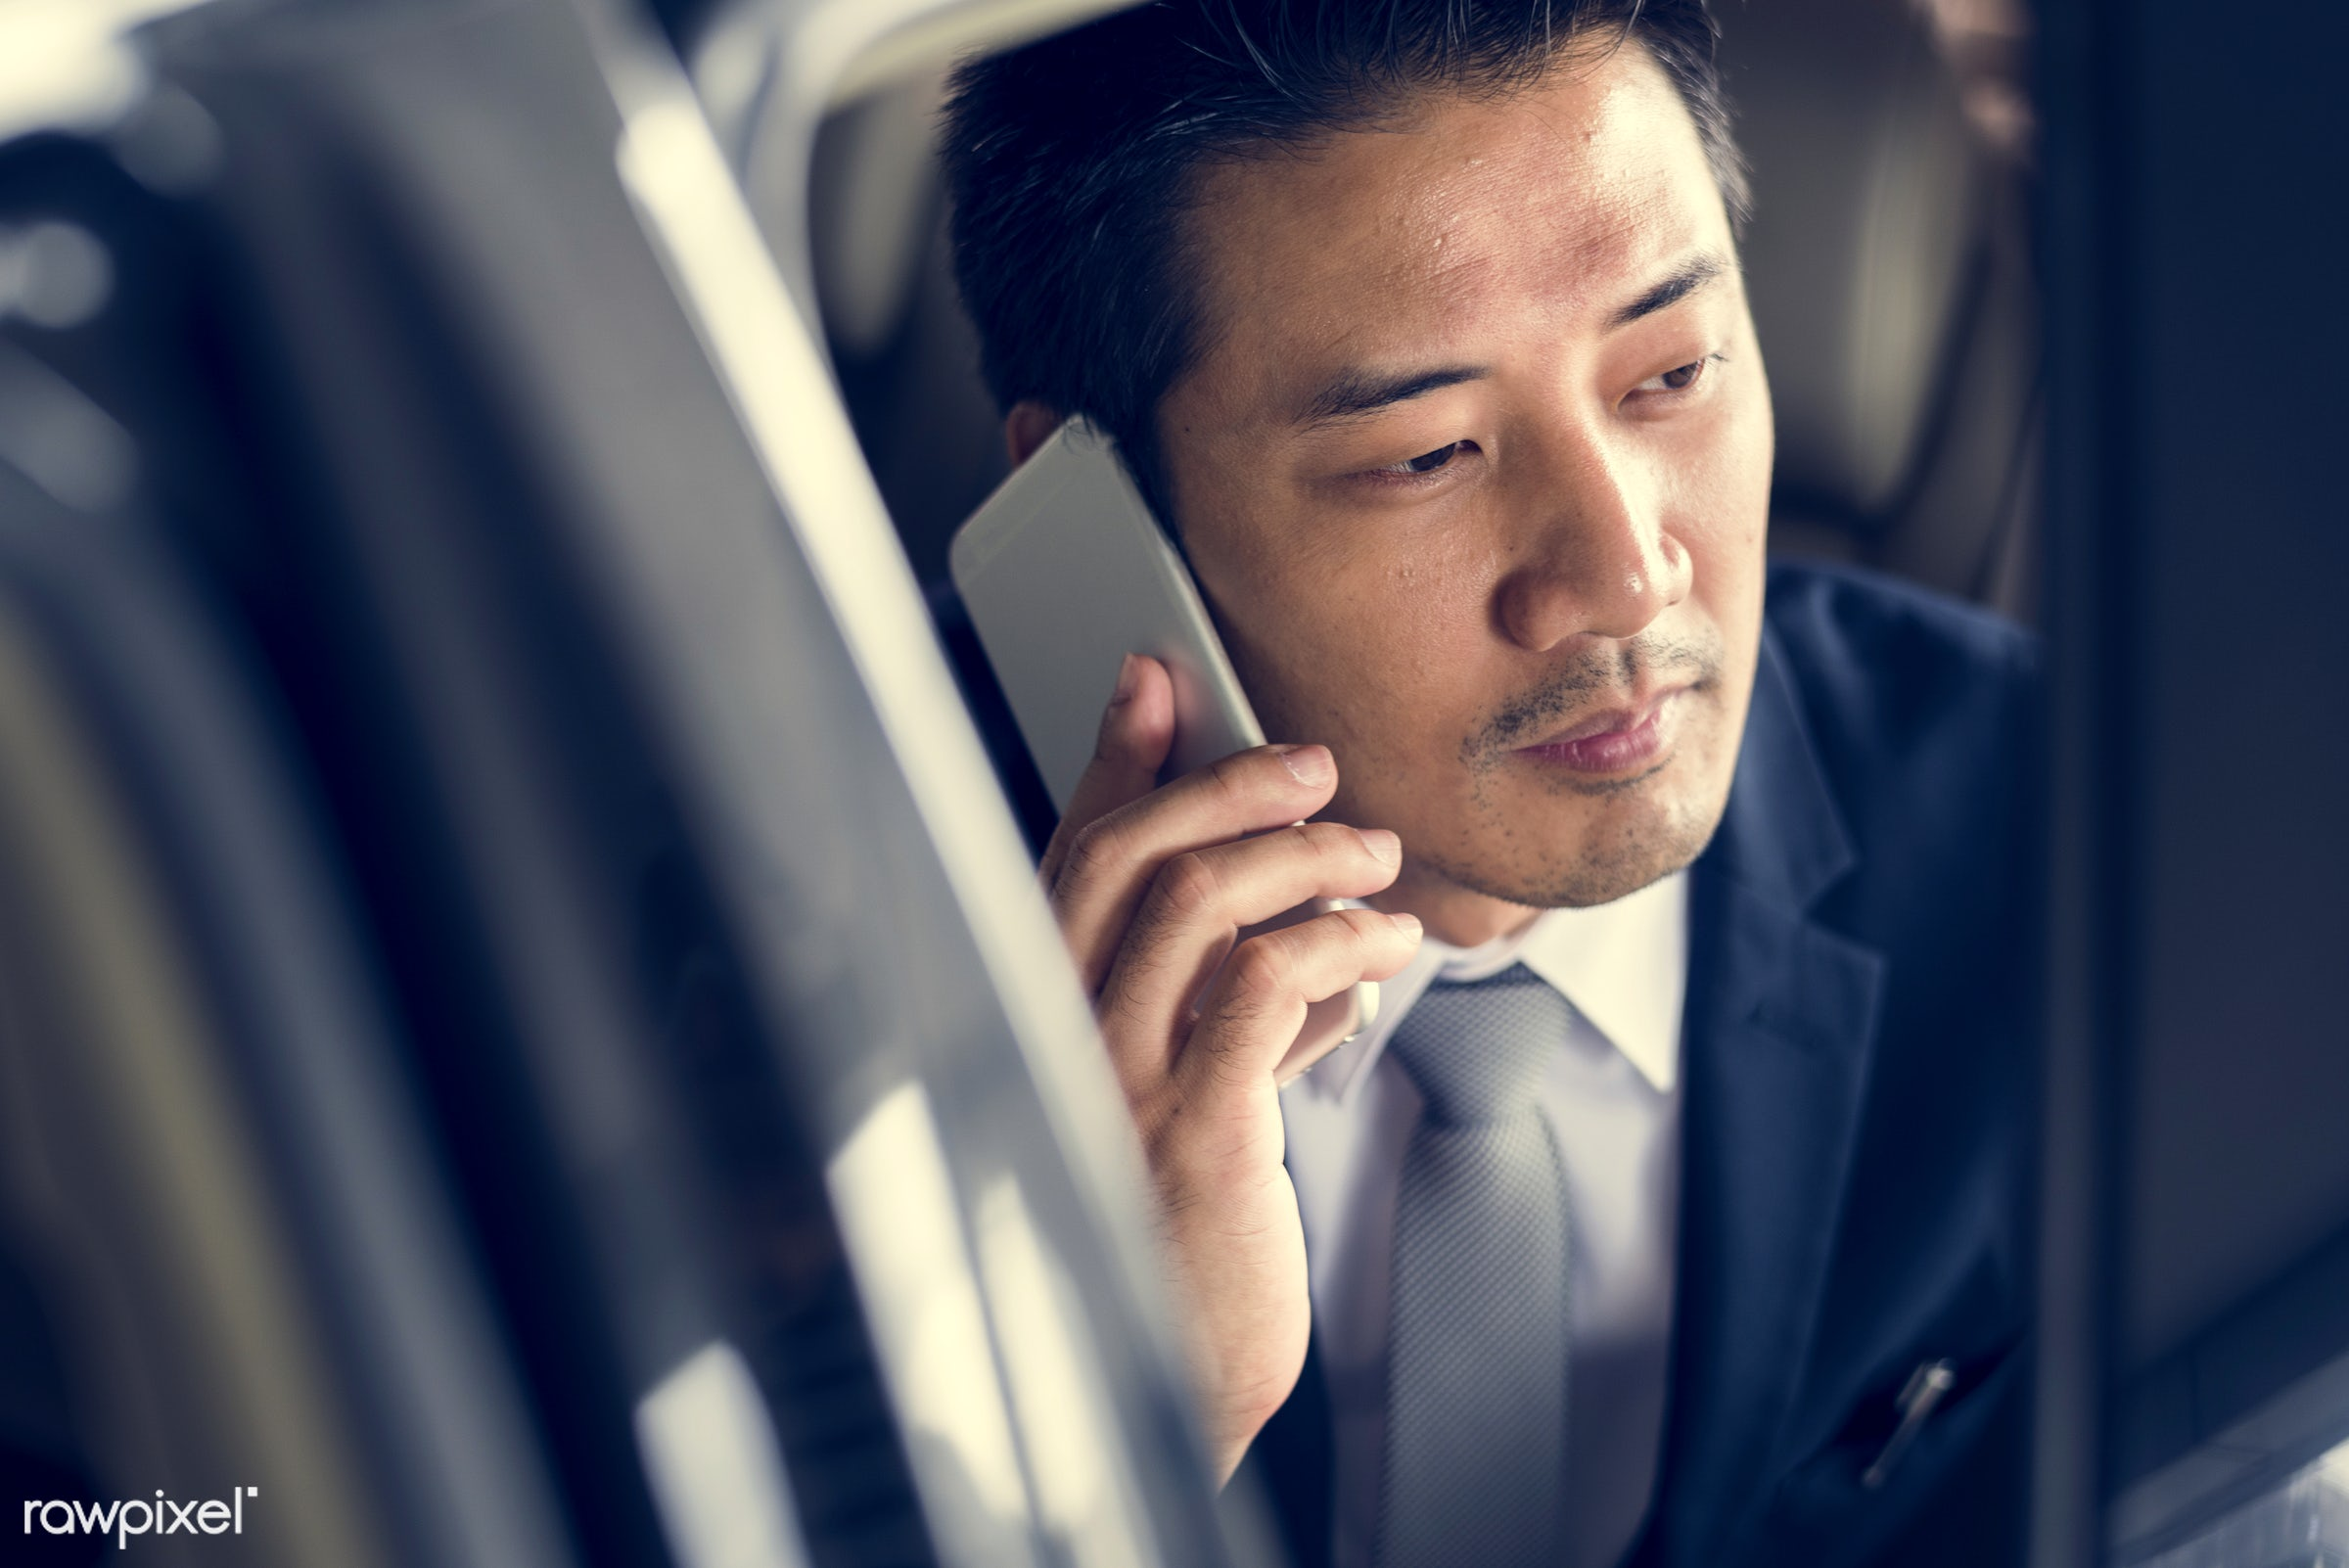 expression, car, face, person, phone, suit and tie, tie, white collar worker, vehicle, travel, transportation, people,...